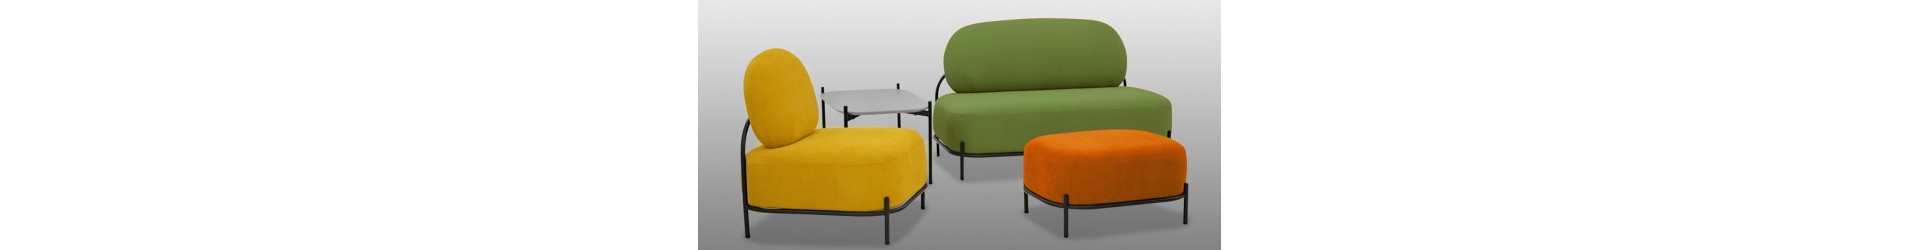 SMALL SOFAS AND SECTIONAL SOFAS